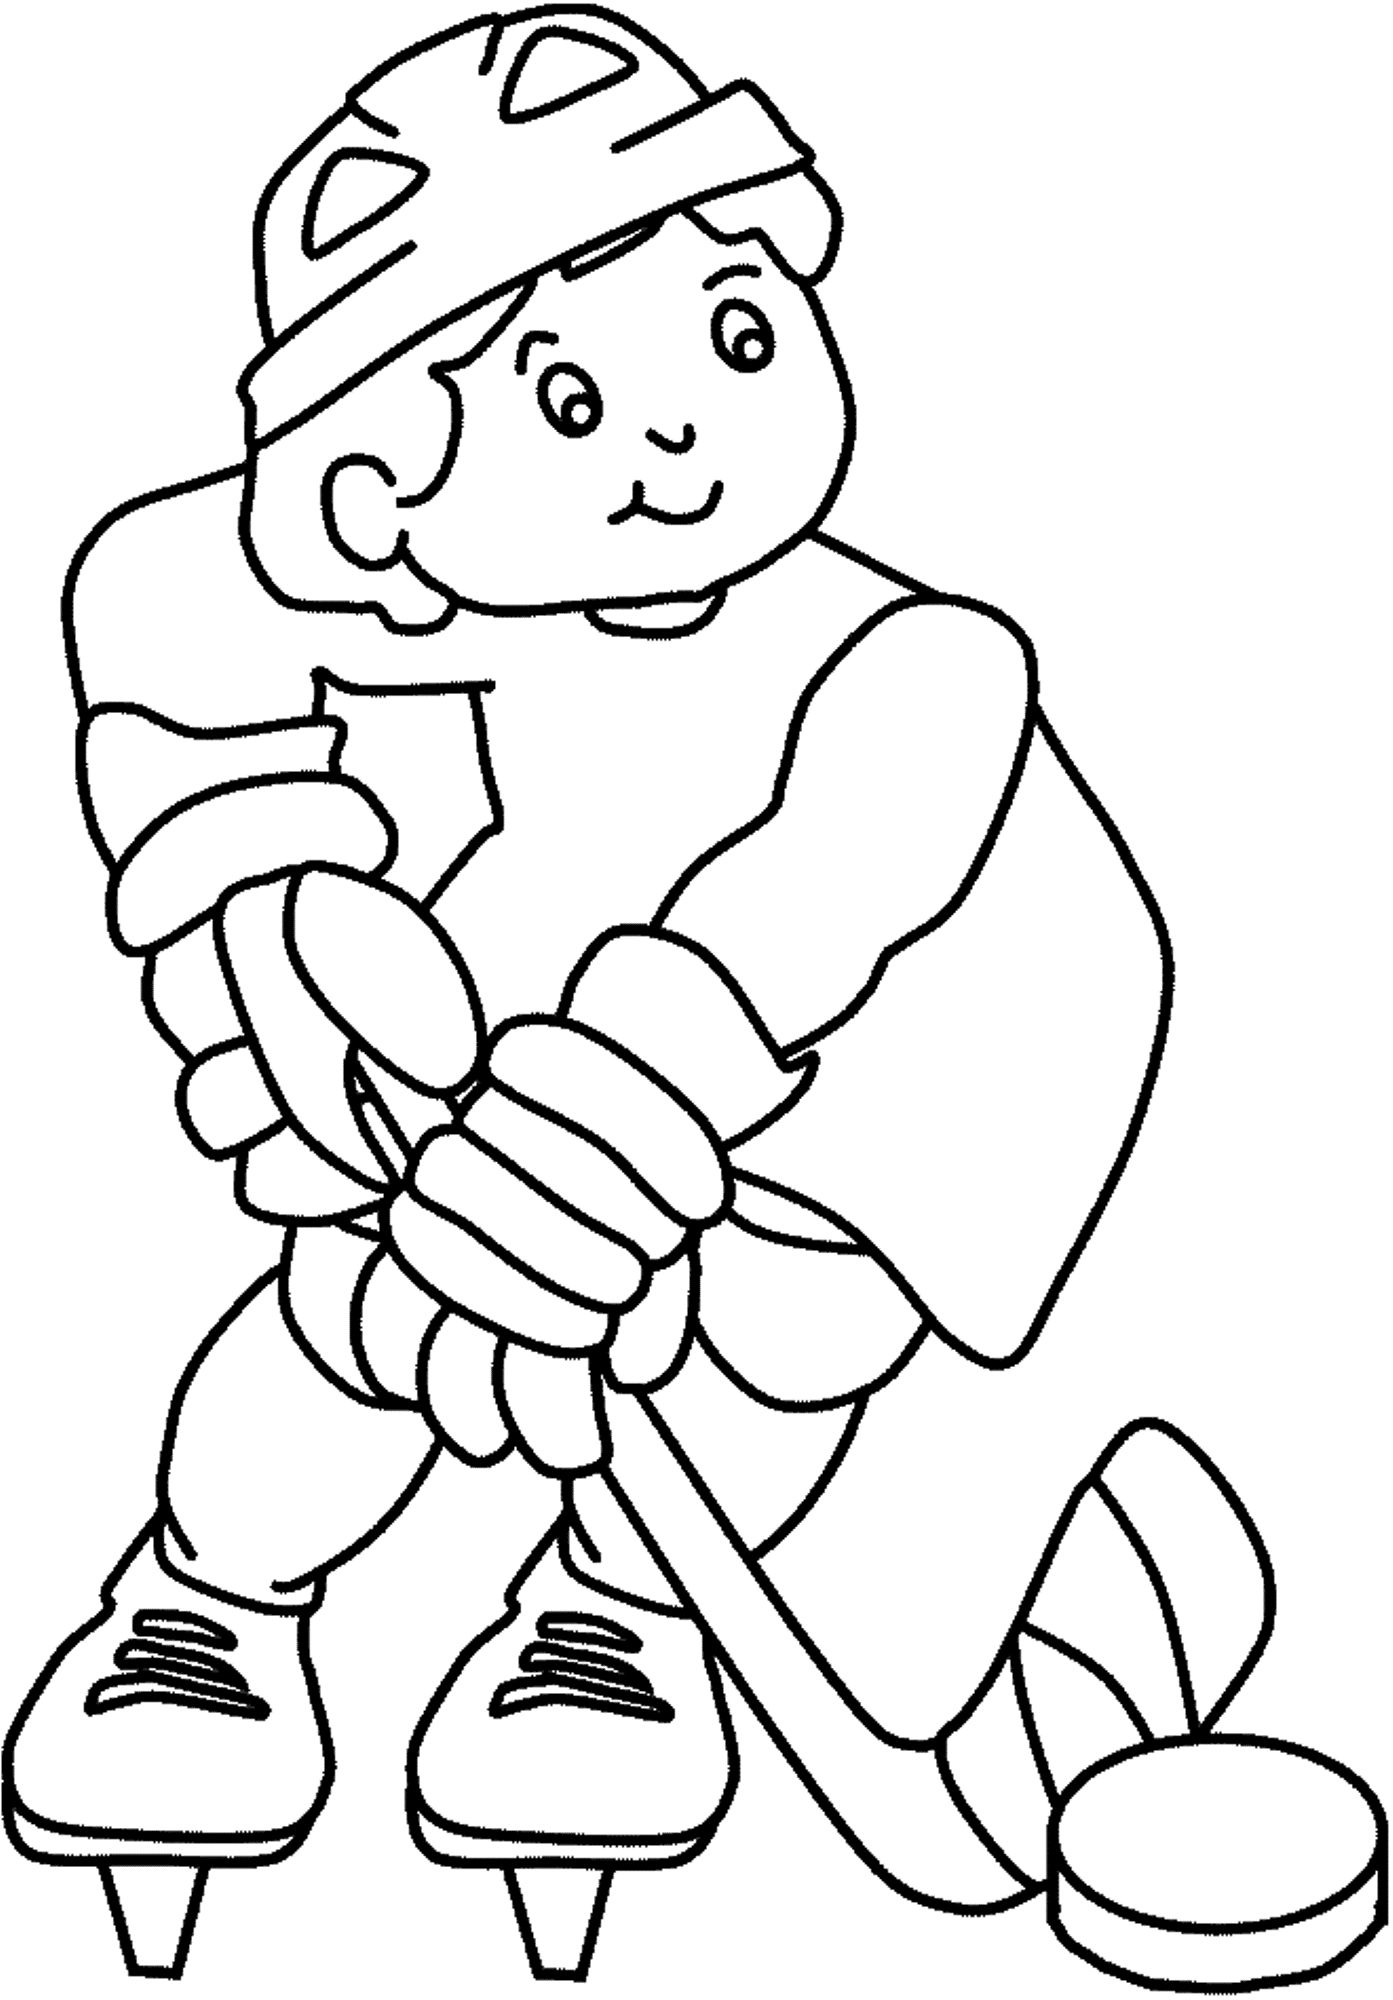 MickeyMousecoloringpages012 Coloring Pages ABC Kids Fun Page